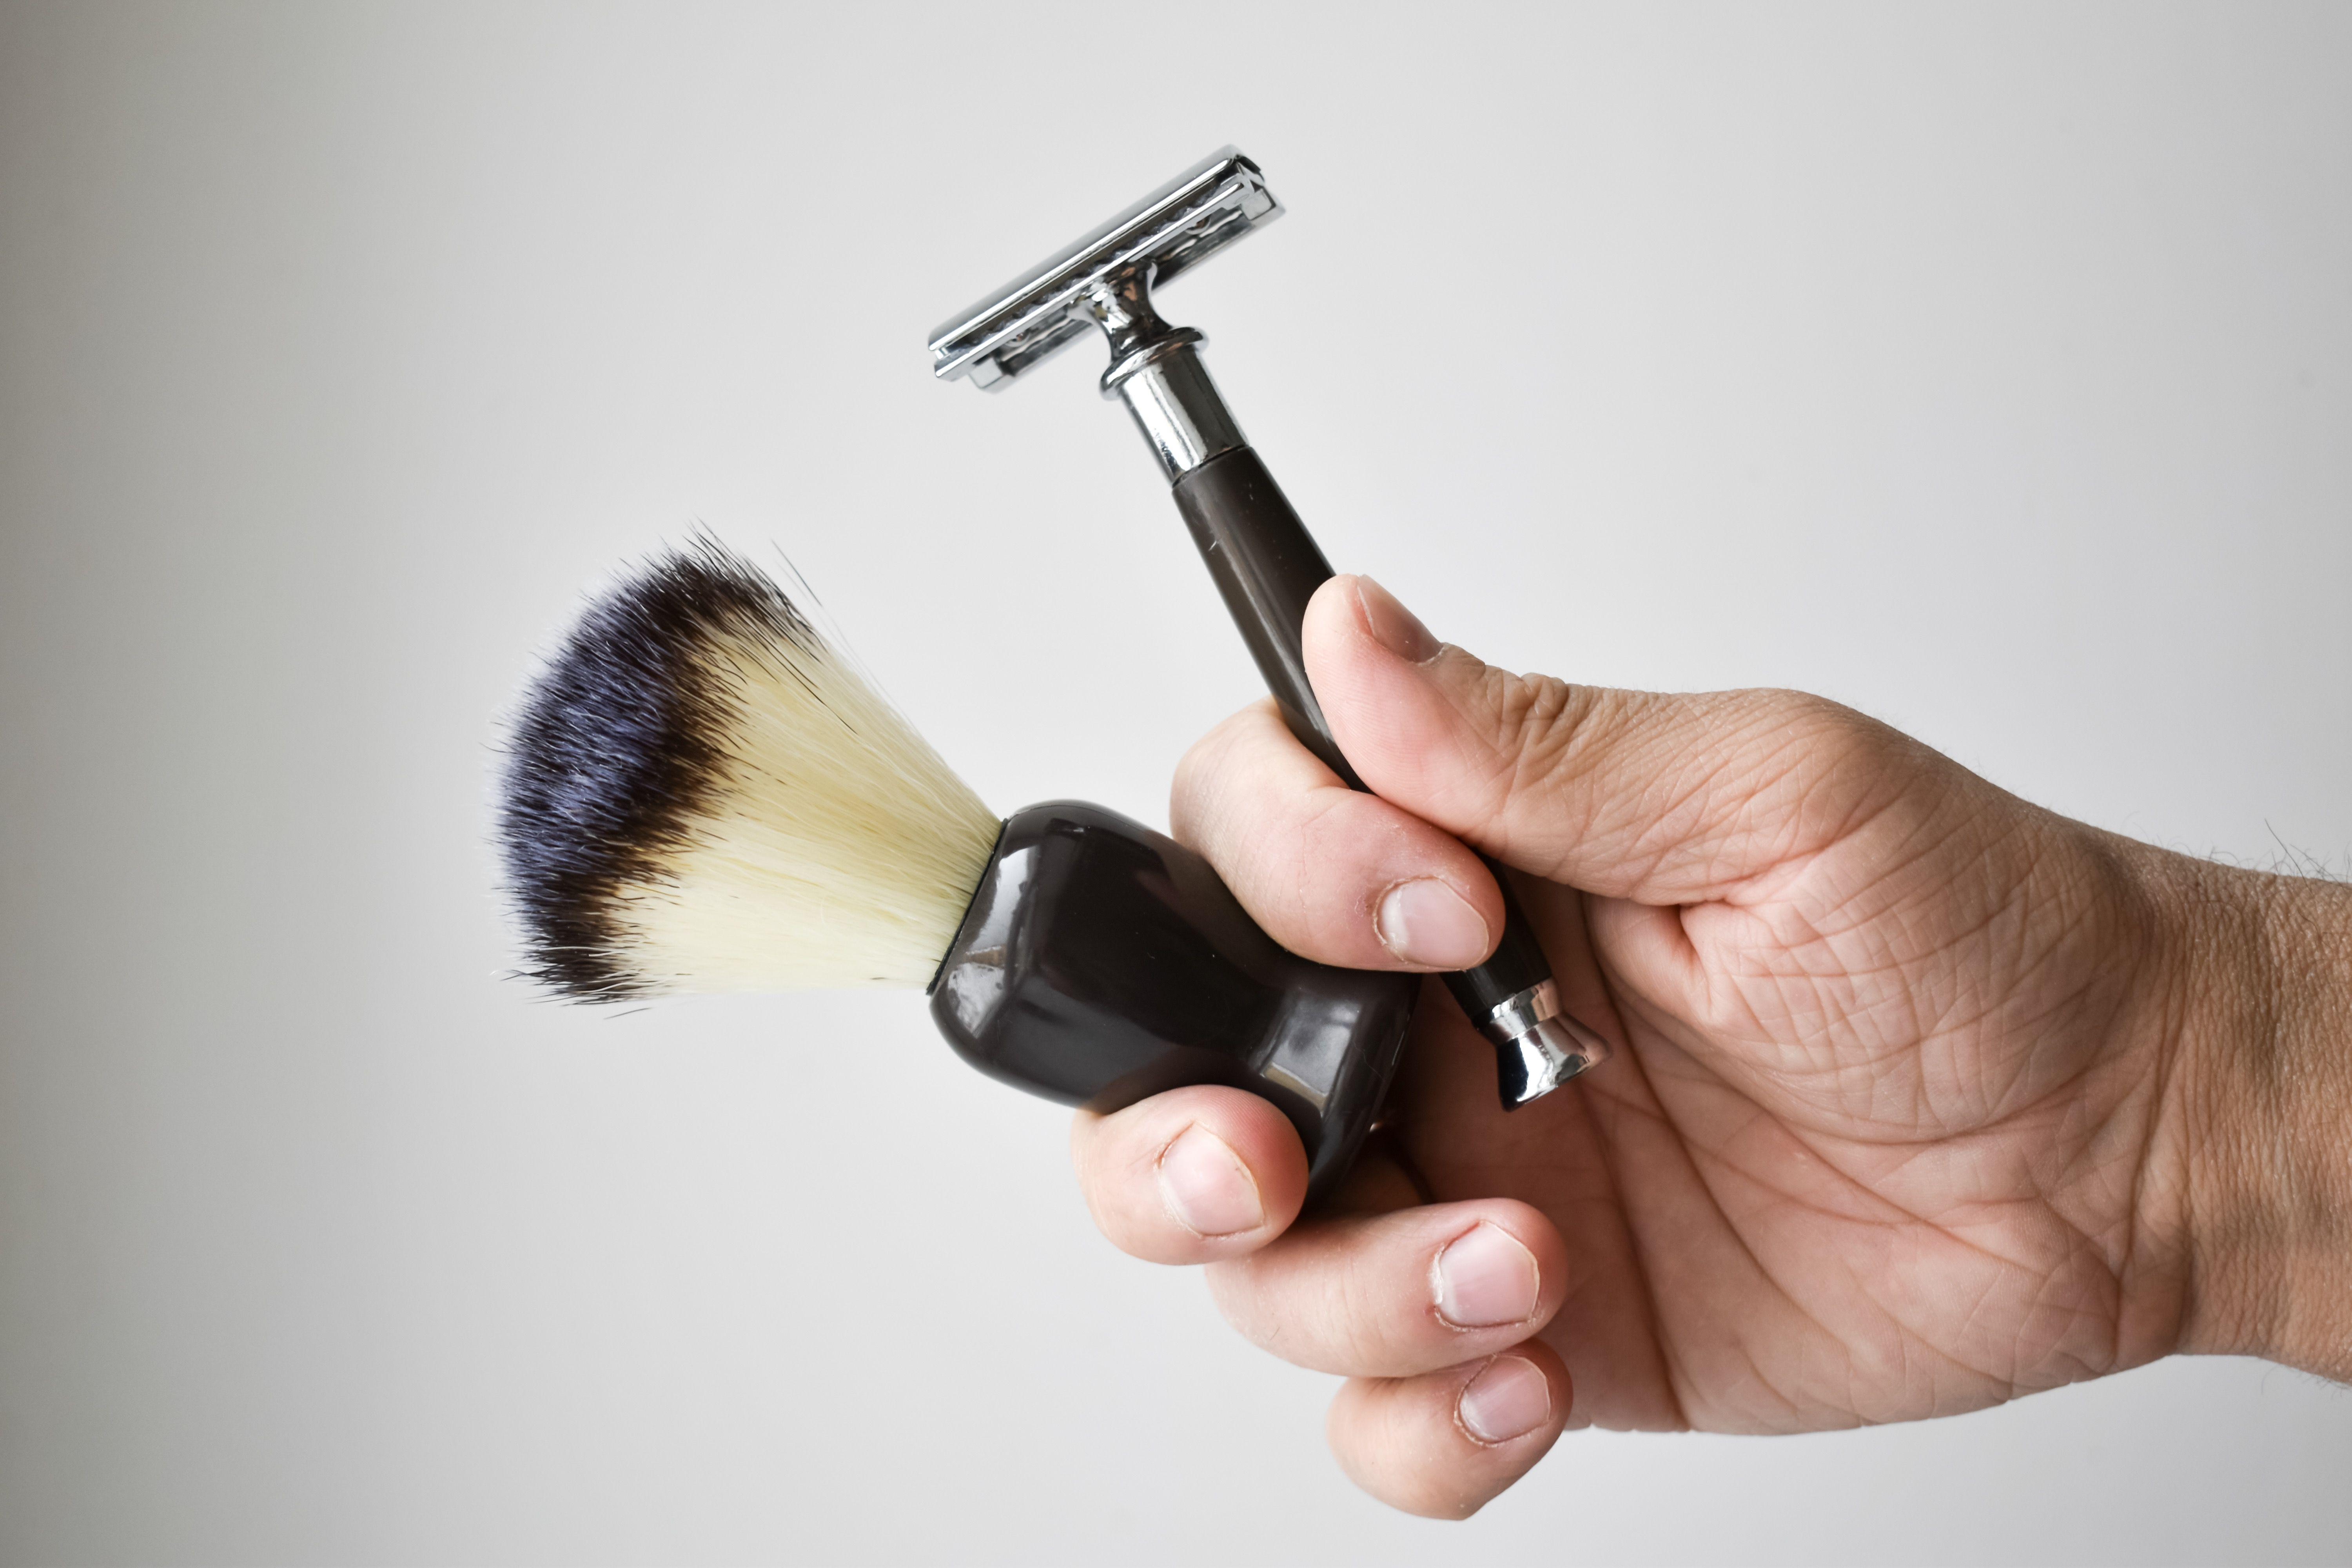 Itch shaving testicles after How to